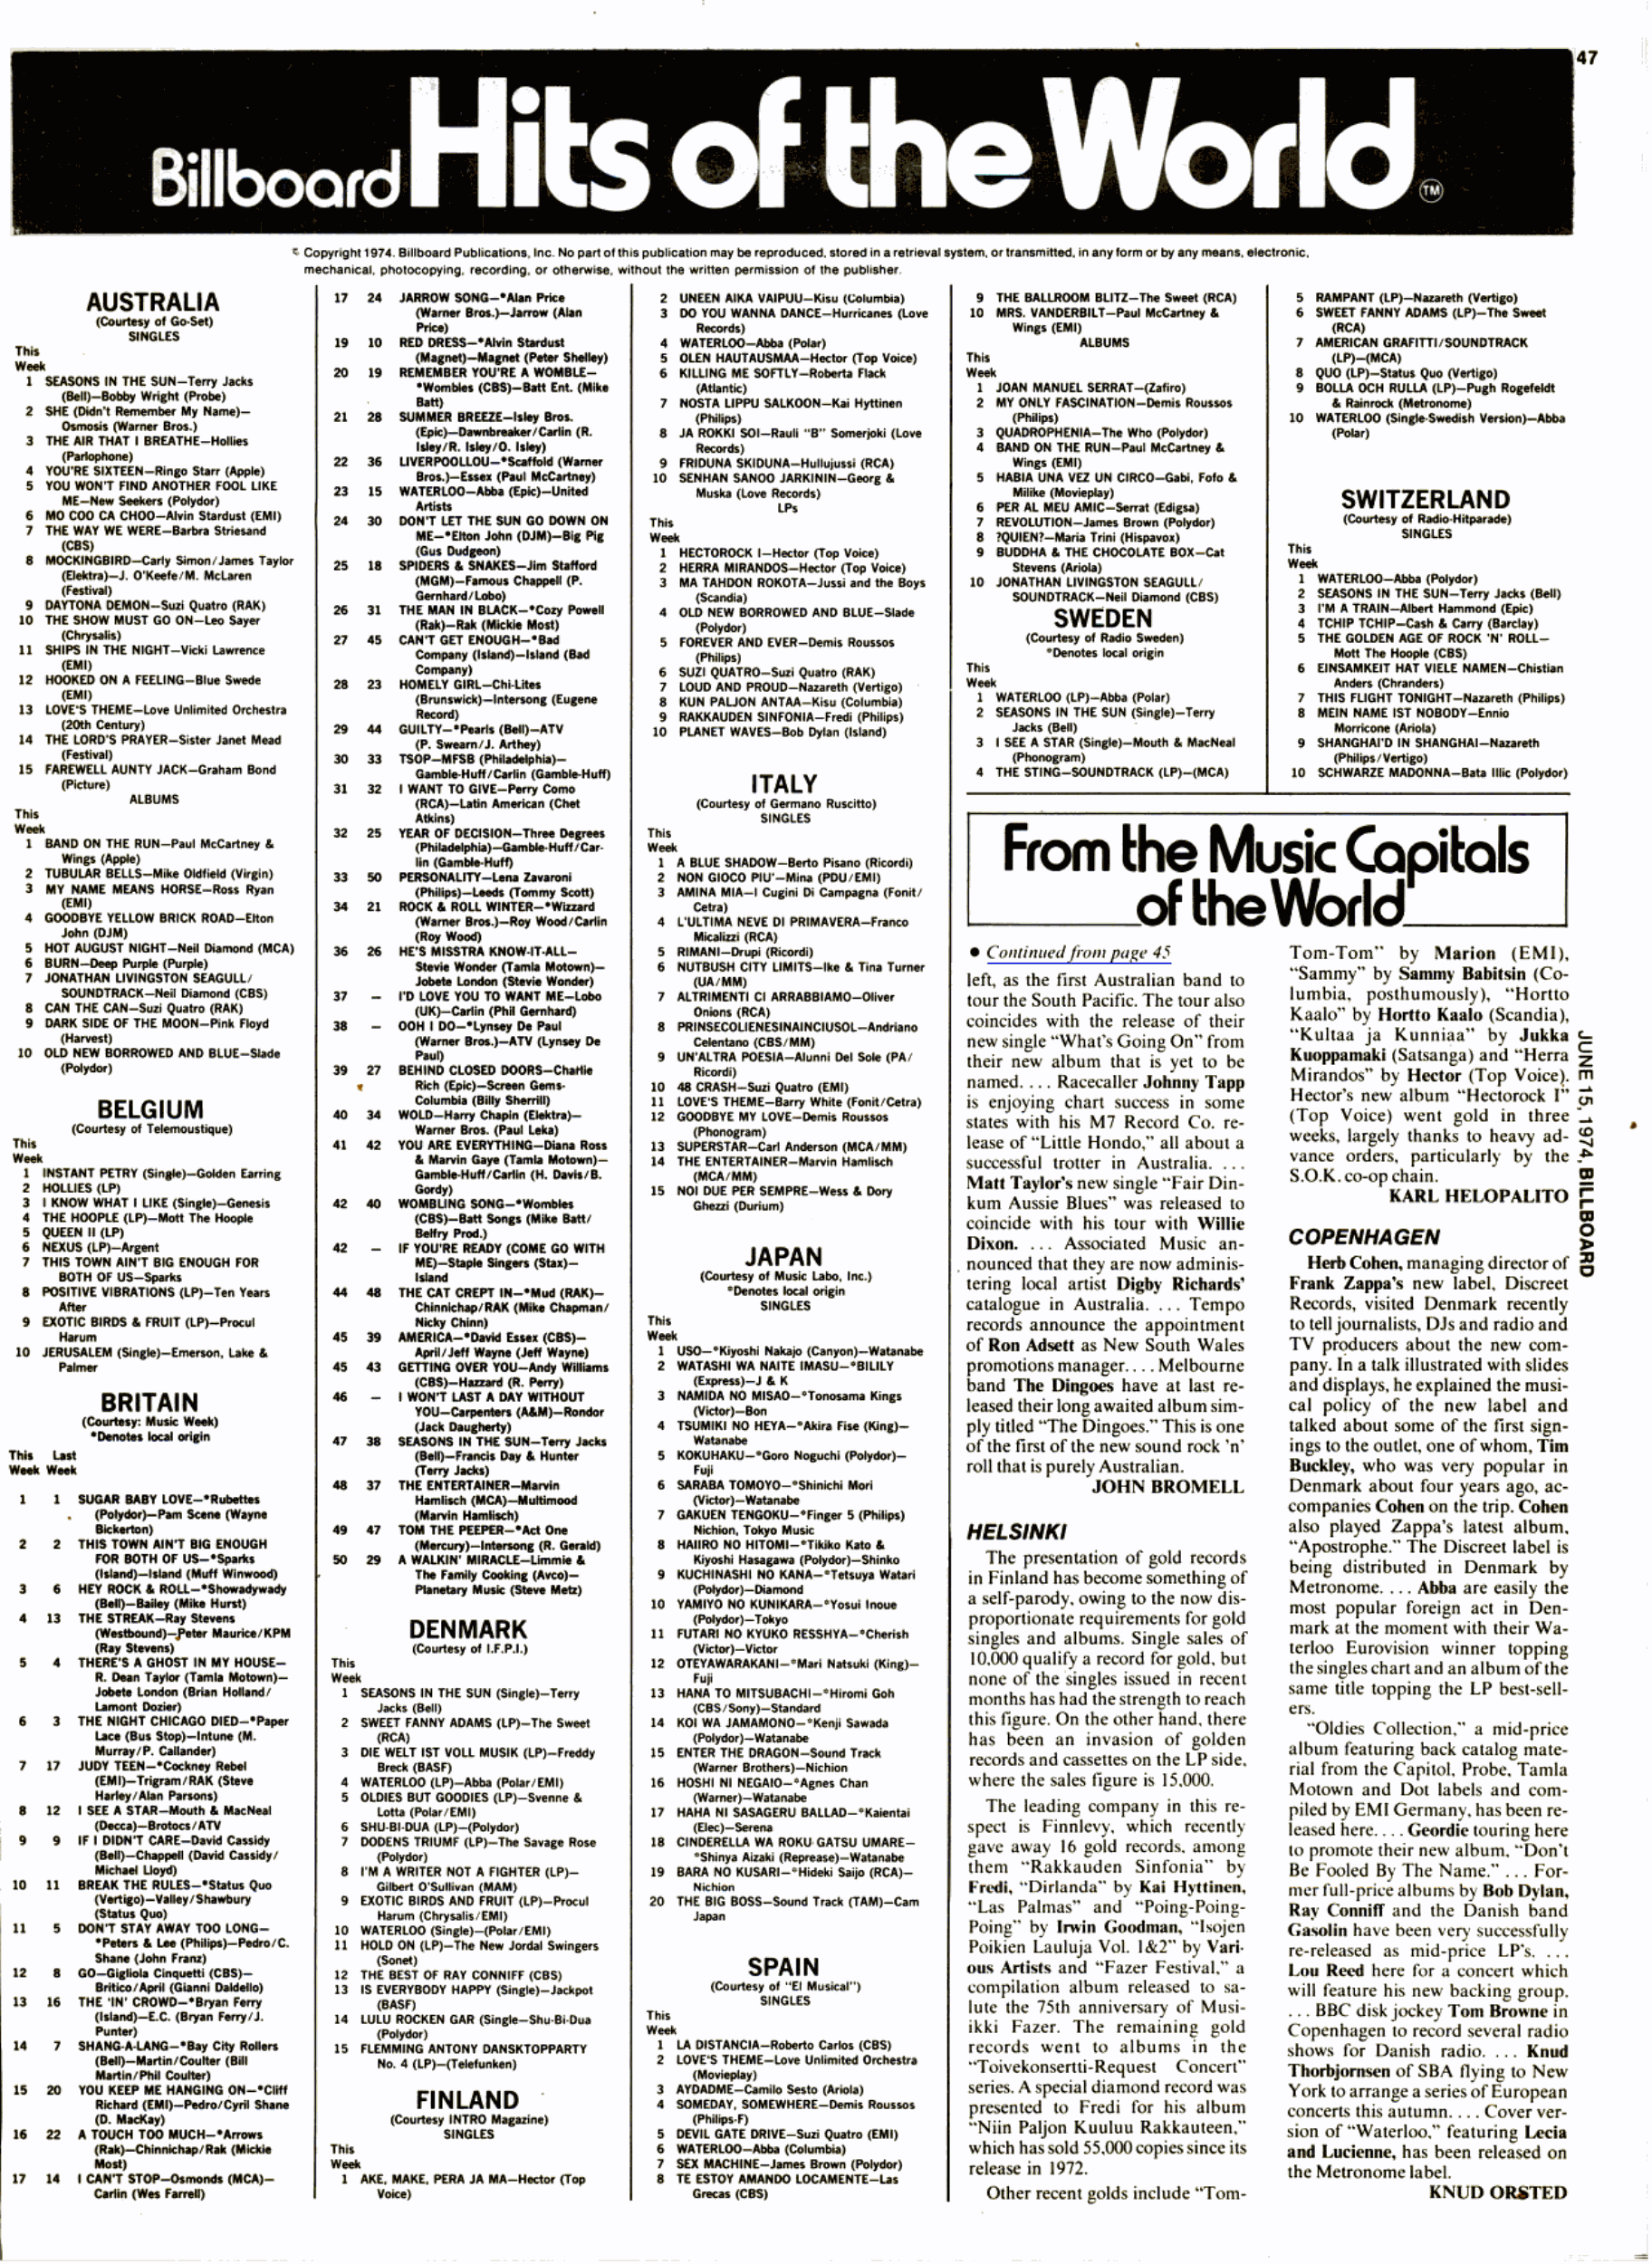 Hits of the World section Of The Billboard Magazine Dated 15 June 1974